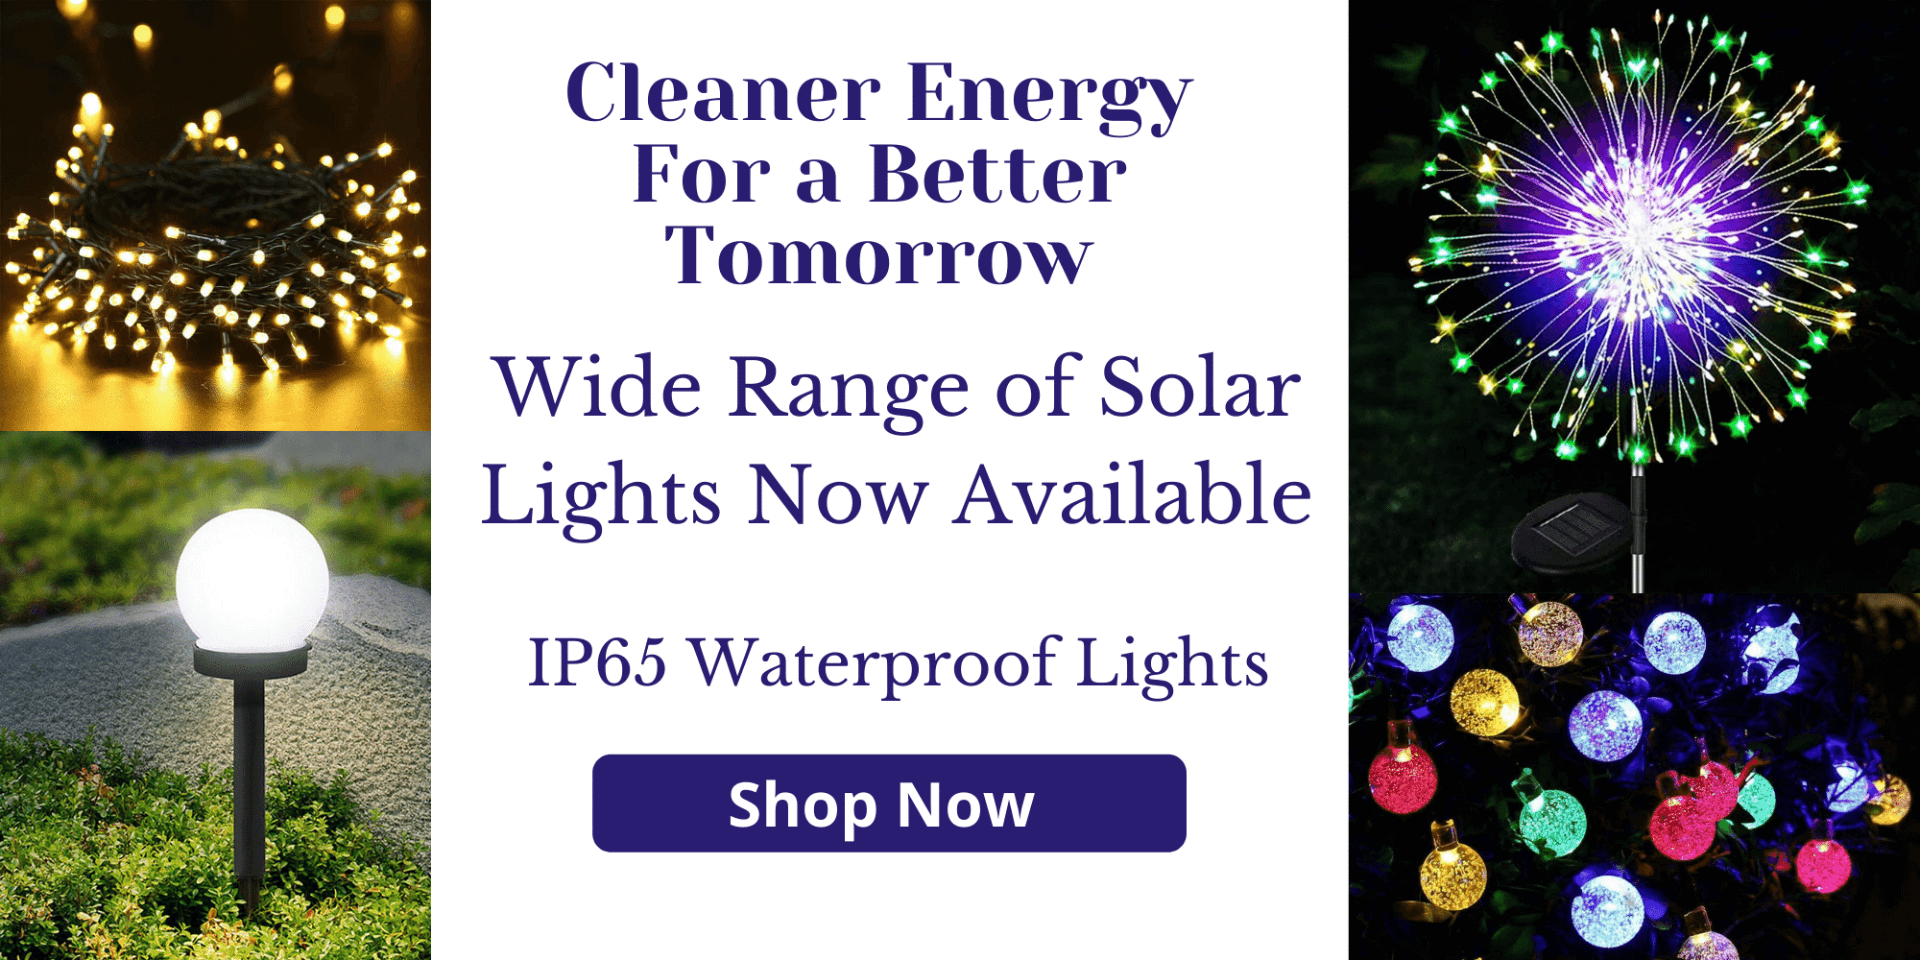 IP65 Waterproof Solar Lights now Available at DK Wholesale